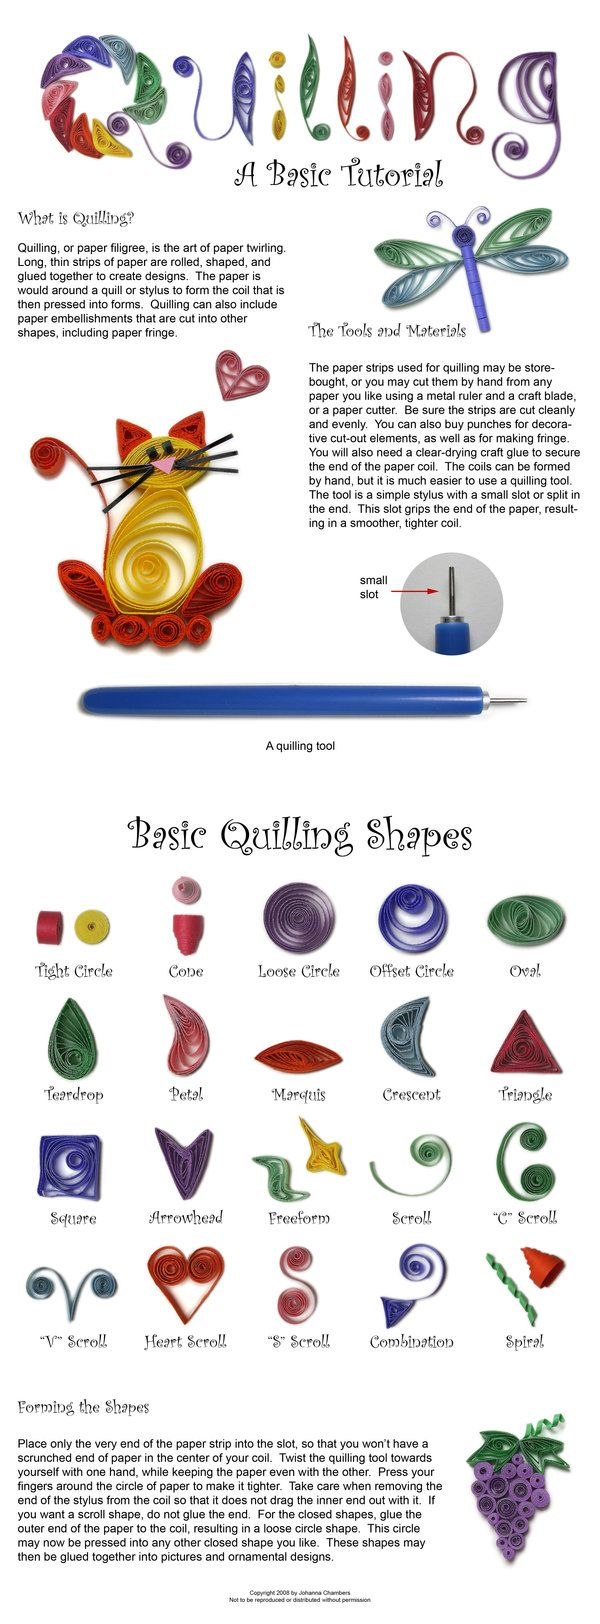 Basic Quilling Tutorial by ~johannachambers on deviantART - Can't many of these be used with extruded polymer clay?  #Polymer #Clay #Tutorials